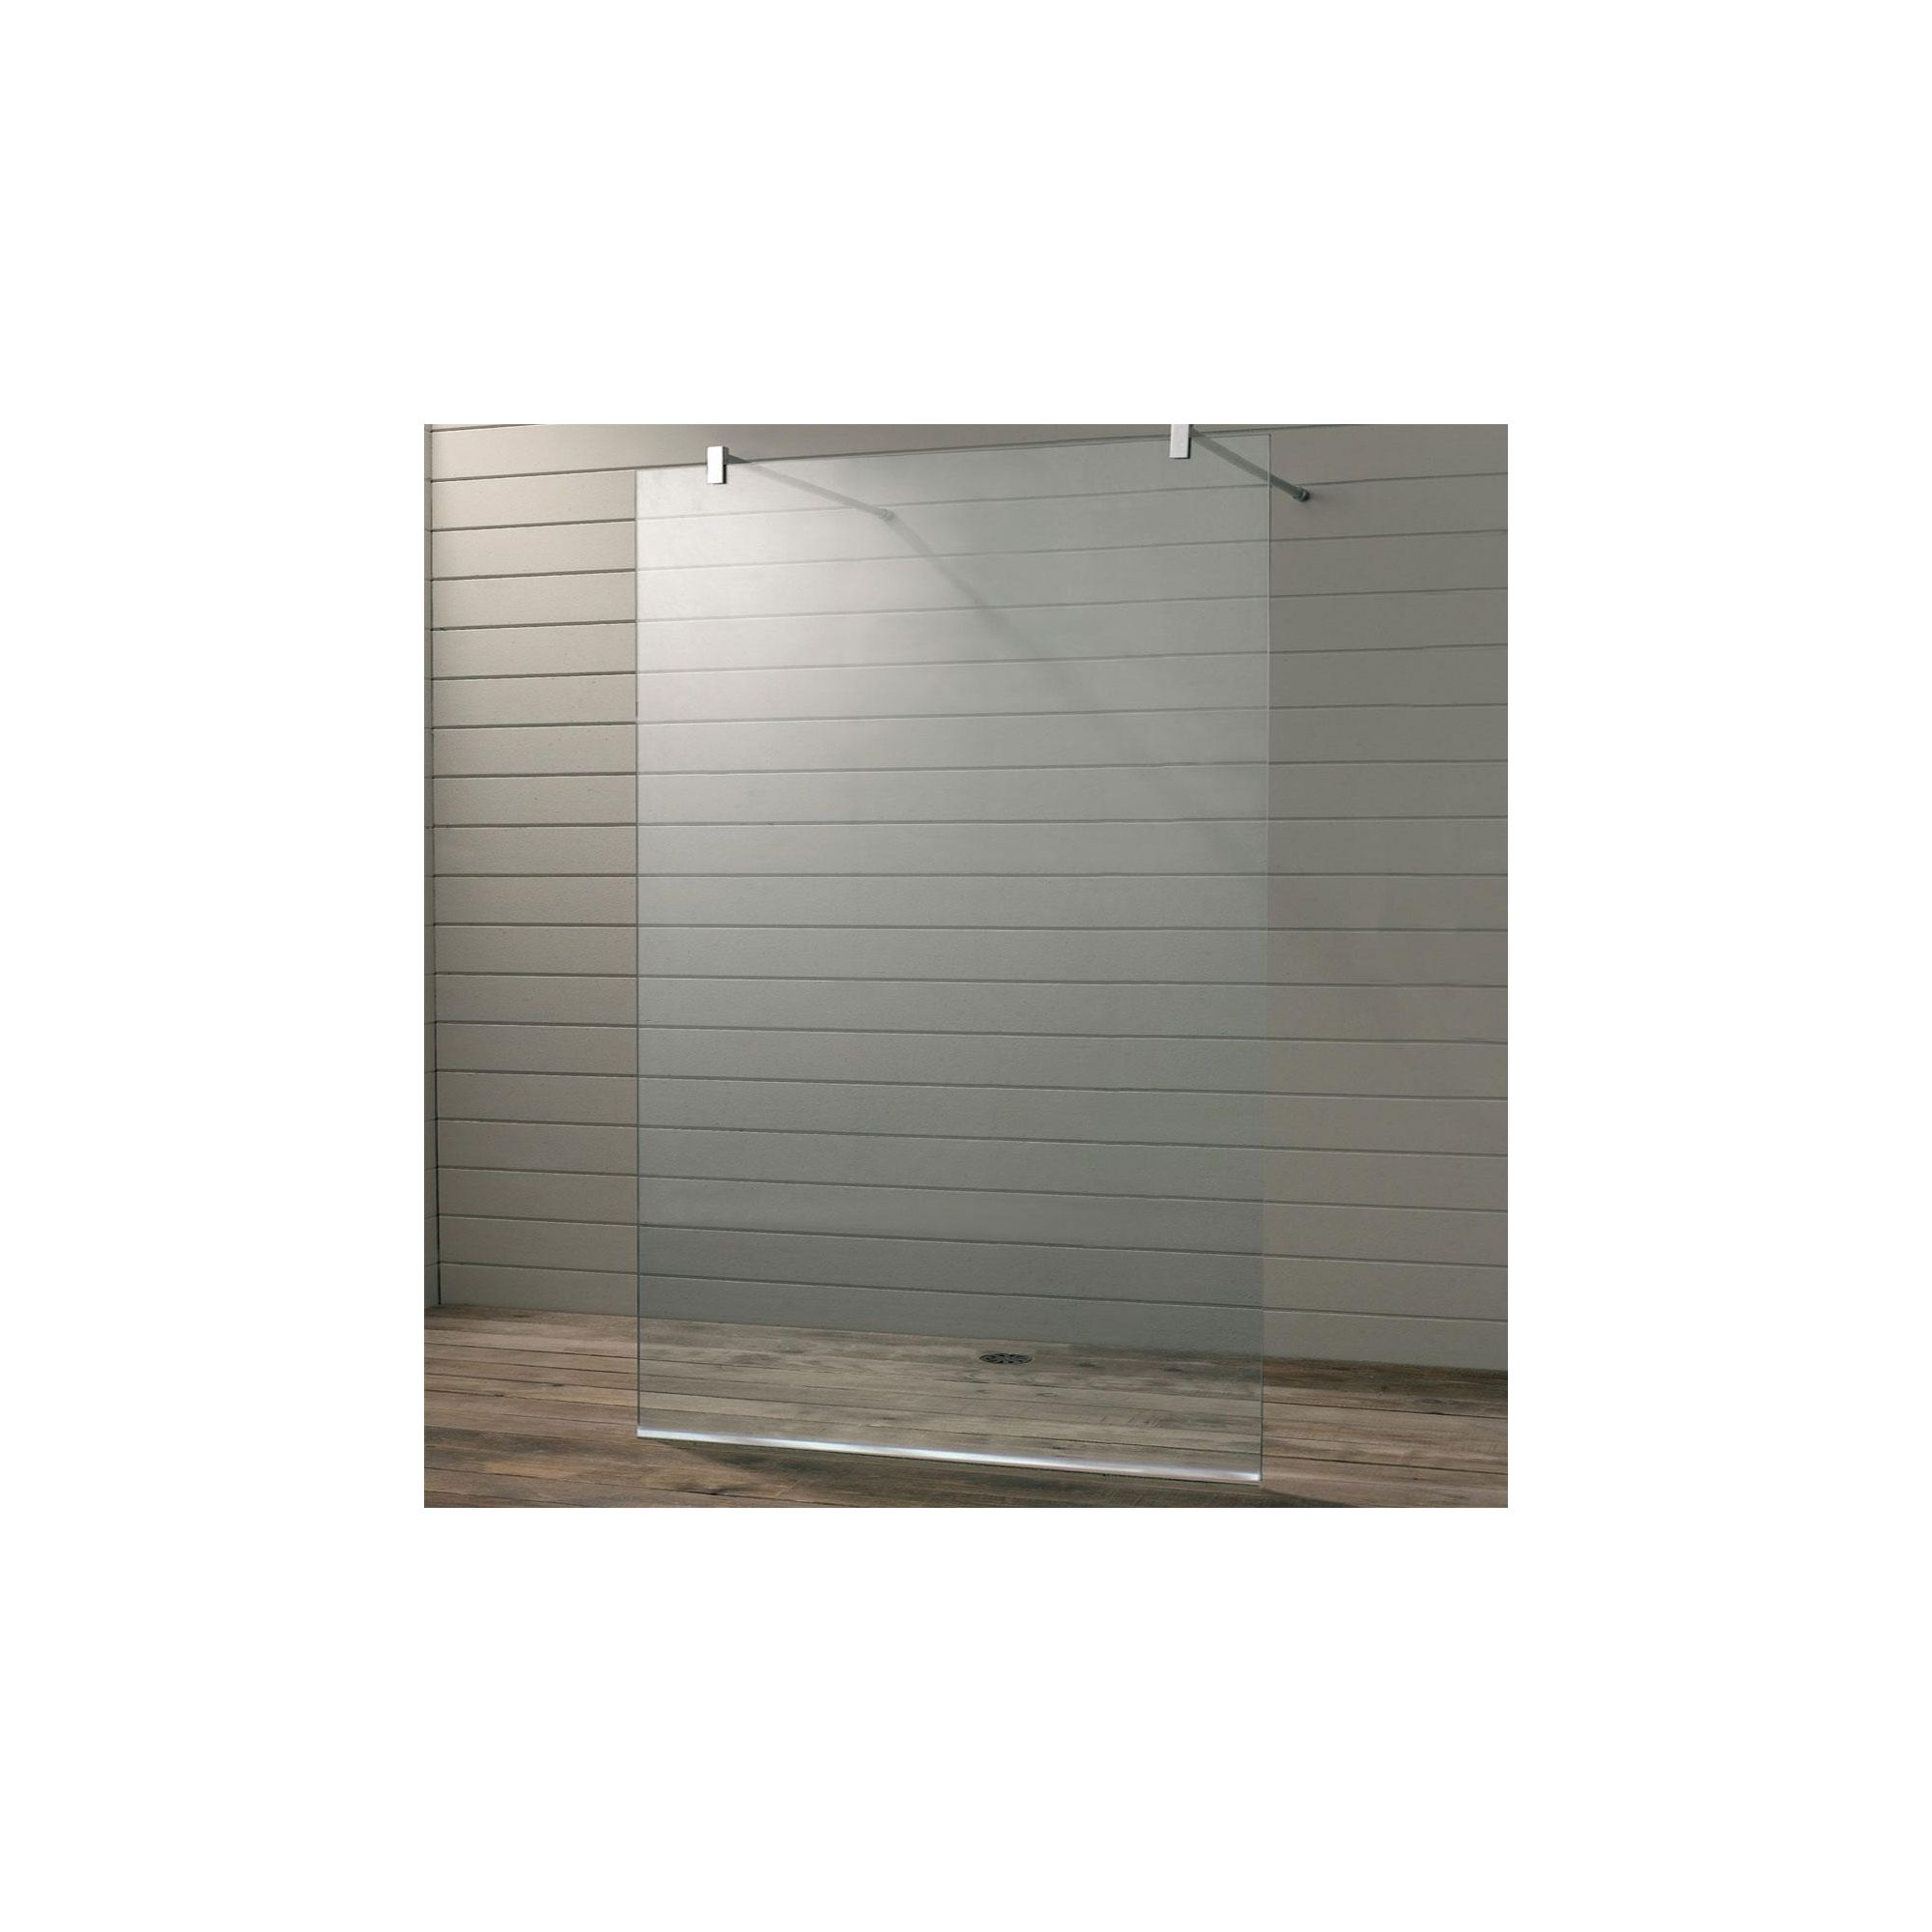 Duchy Premium Wet Room Glass Shower Panel, 760mm x 760mm, 10mm Glass, Low Profile Tray at Tesco Direct